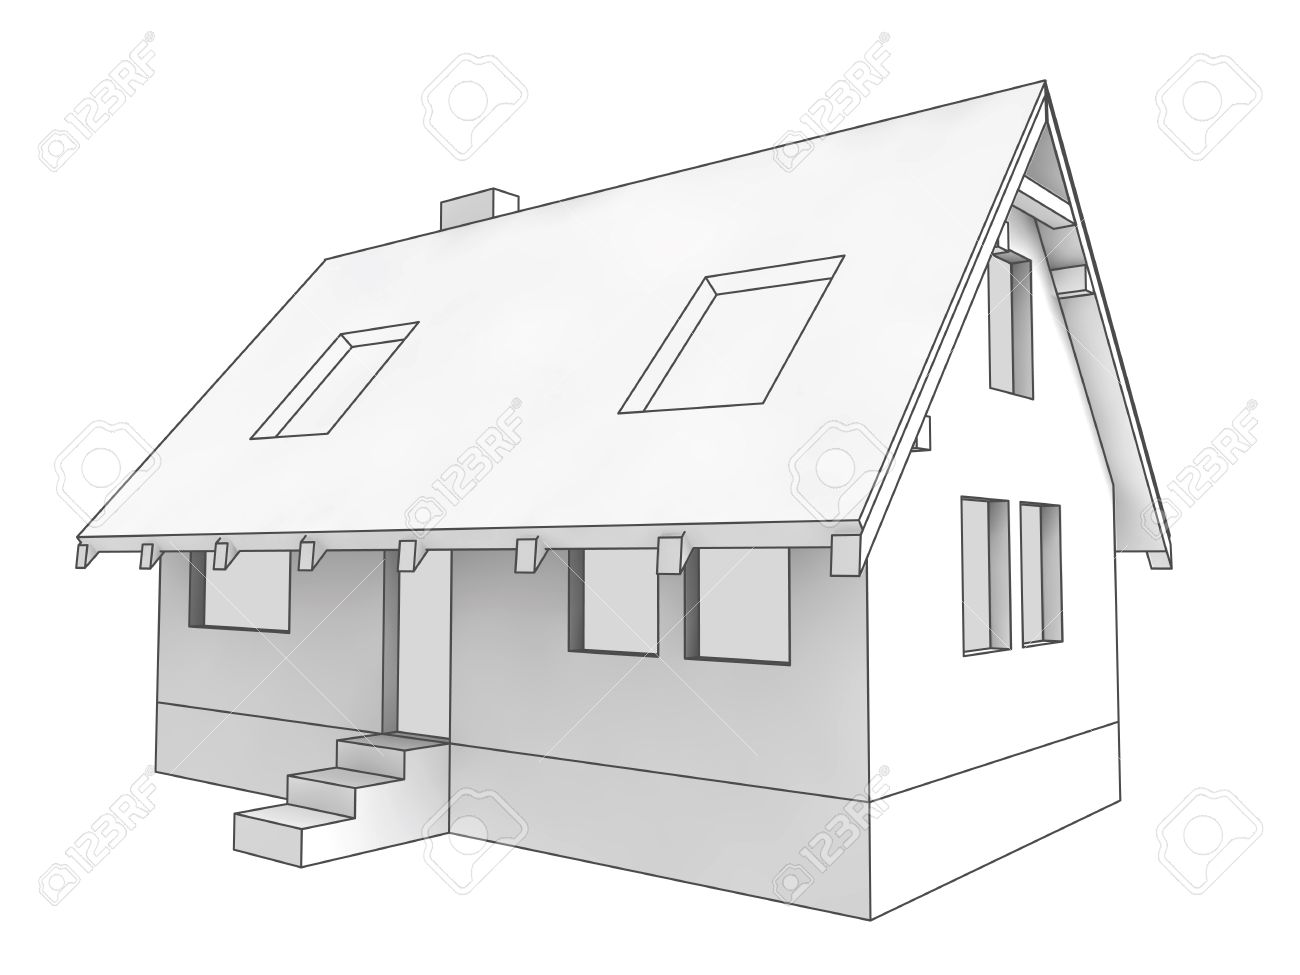 Isolated diagram icon of new private house project illustration isolated diagram icon of new private house project illustration stock illustration 15503273 pooptronica